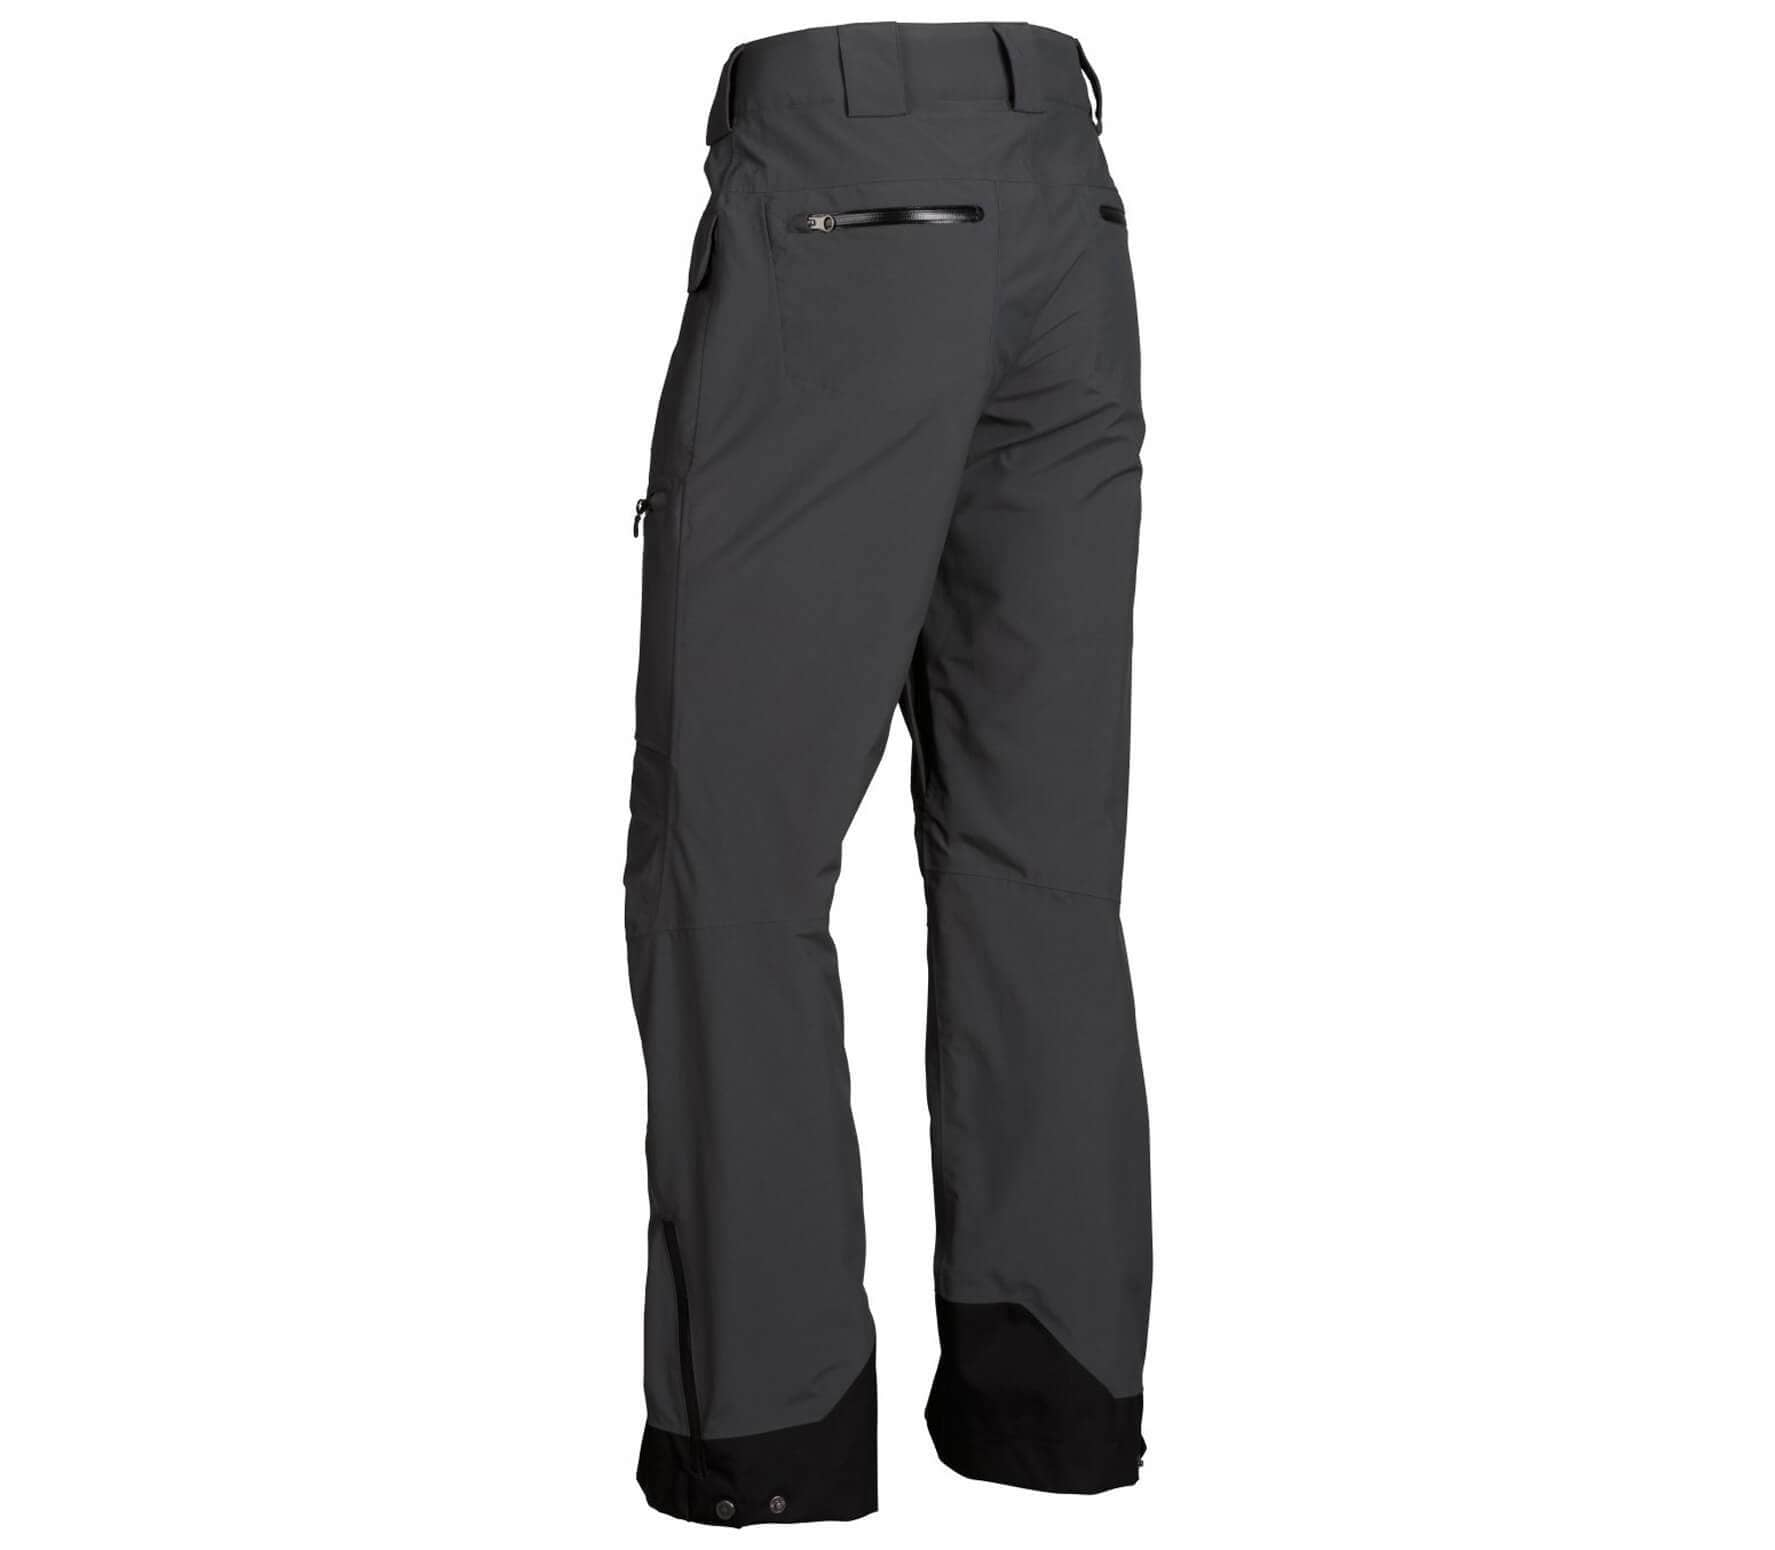 marmot insulated mantra herr ka skidor pants gr handla online p keller sports. Black Bedroom Furniture Sets. Home Design Ideas